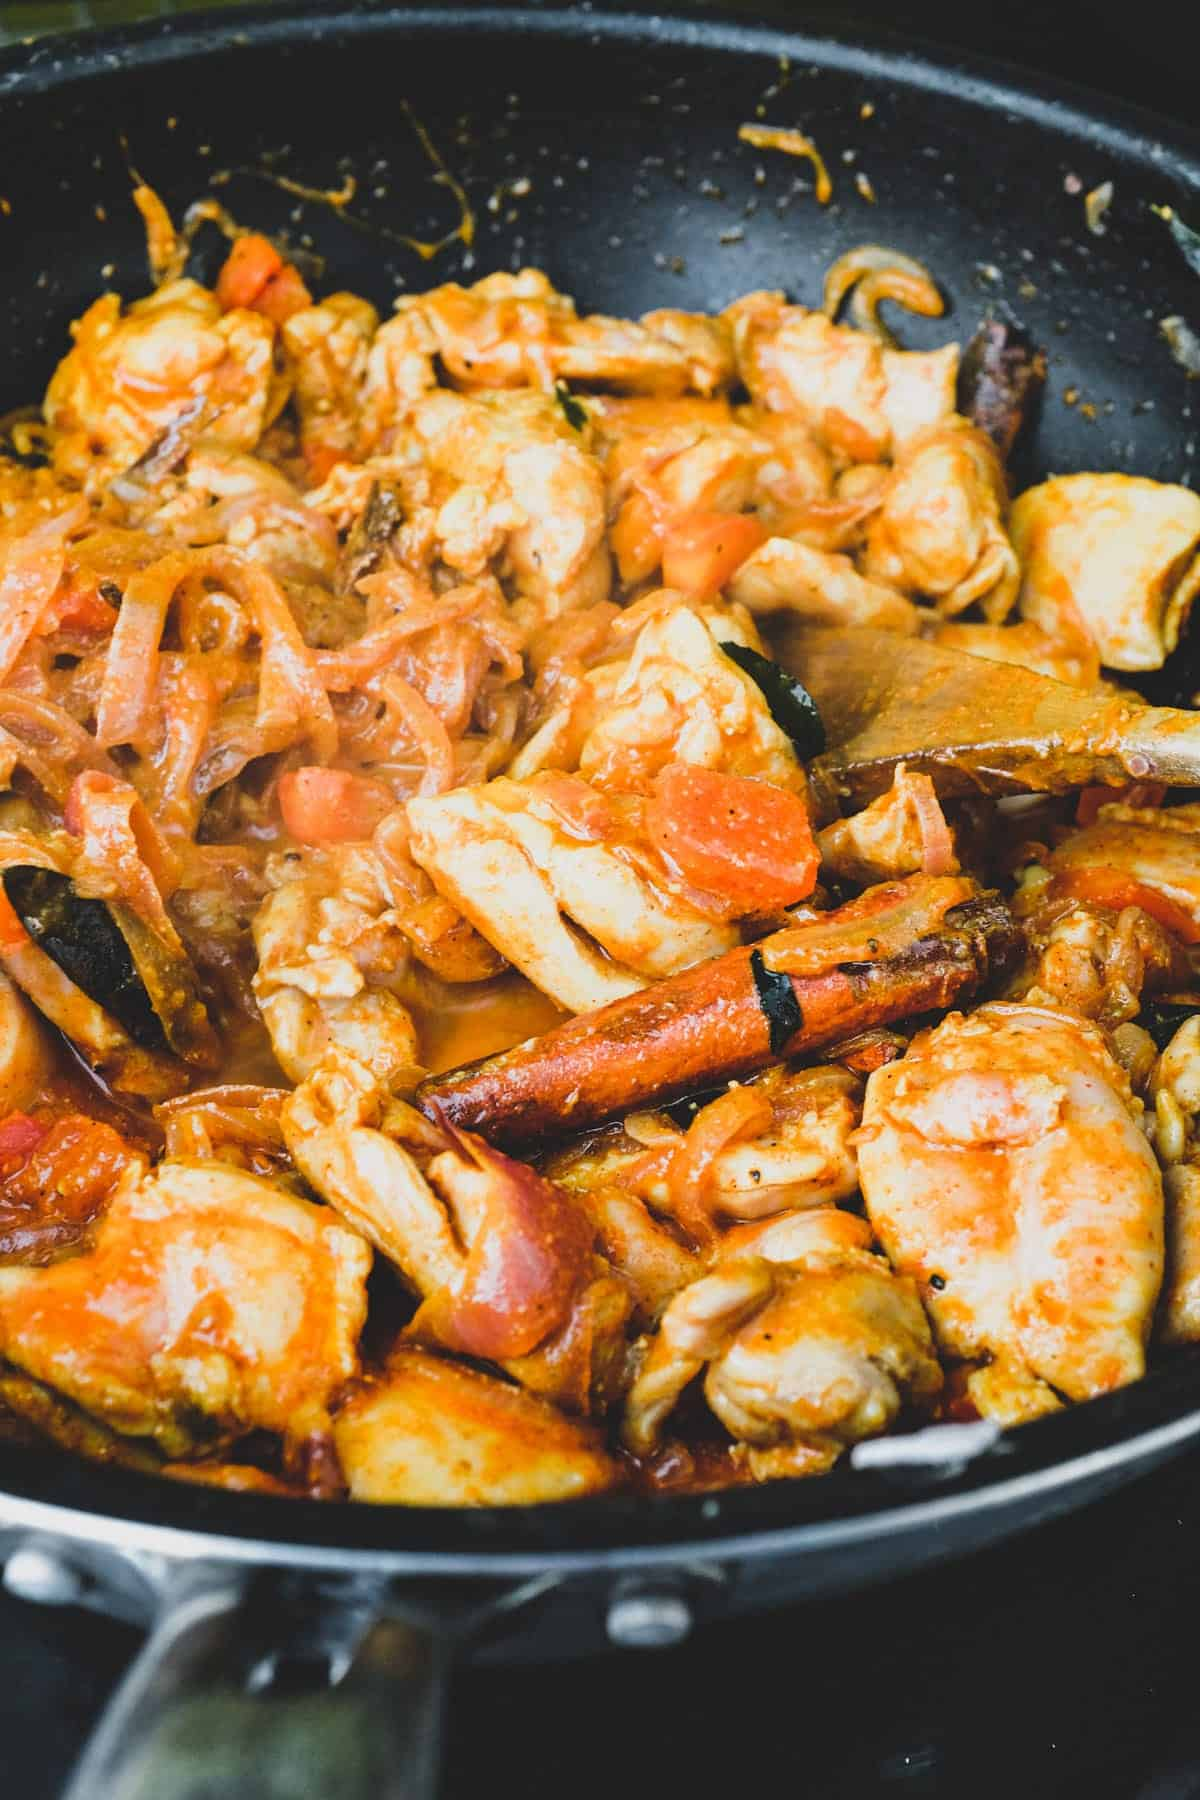 Chicken cooked with vinegar. spices, garlic and tomato.